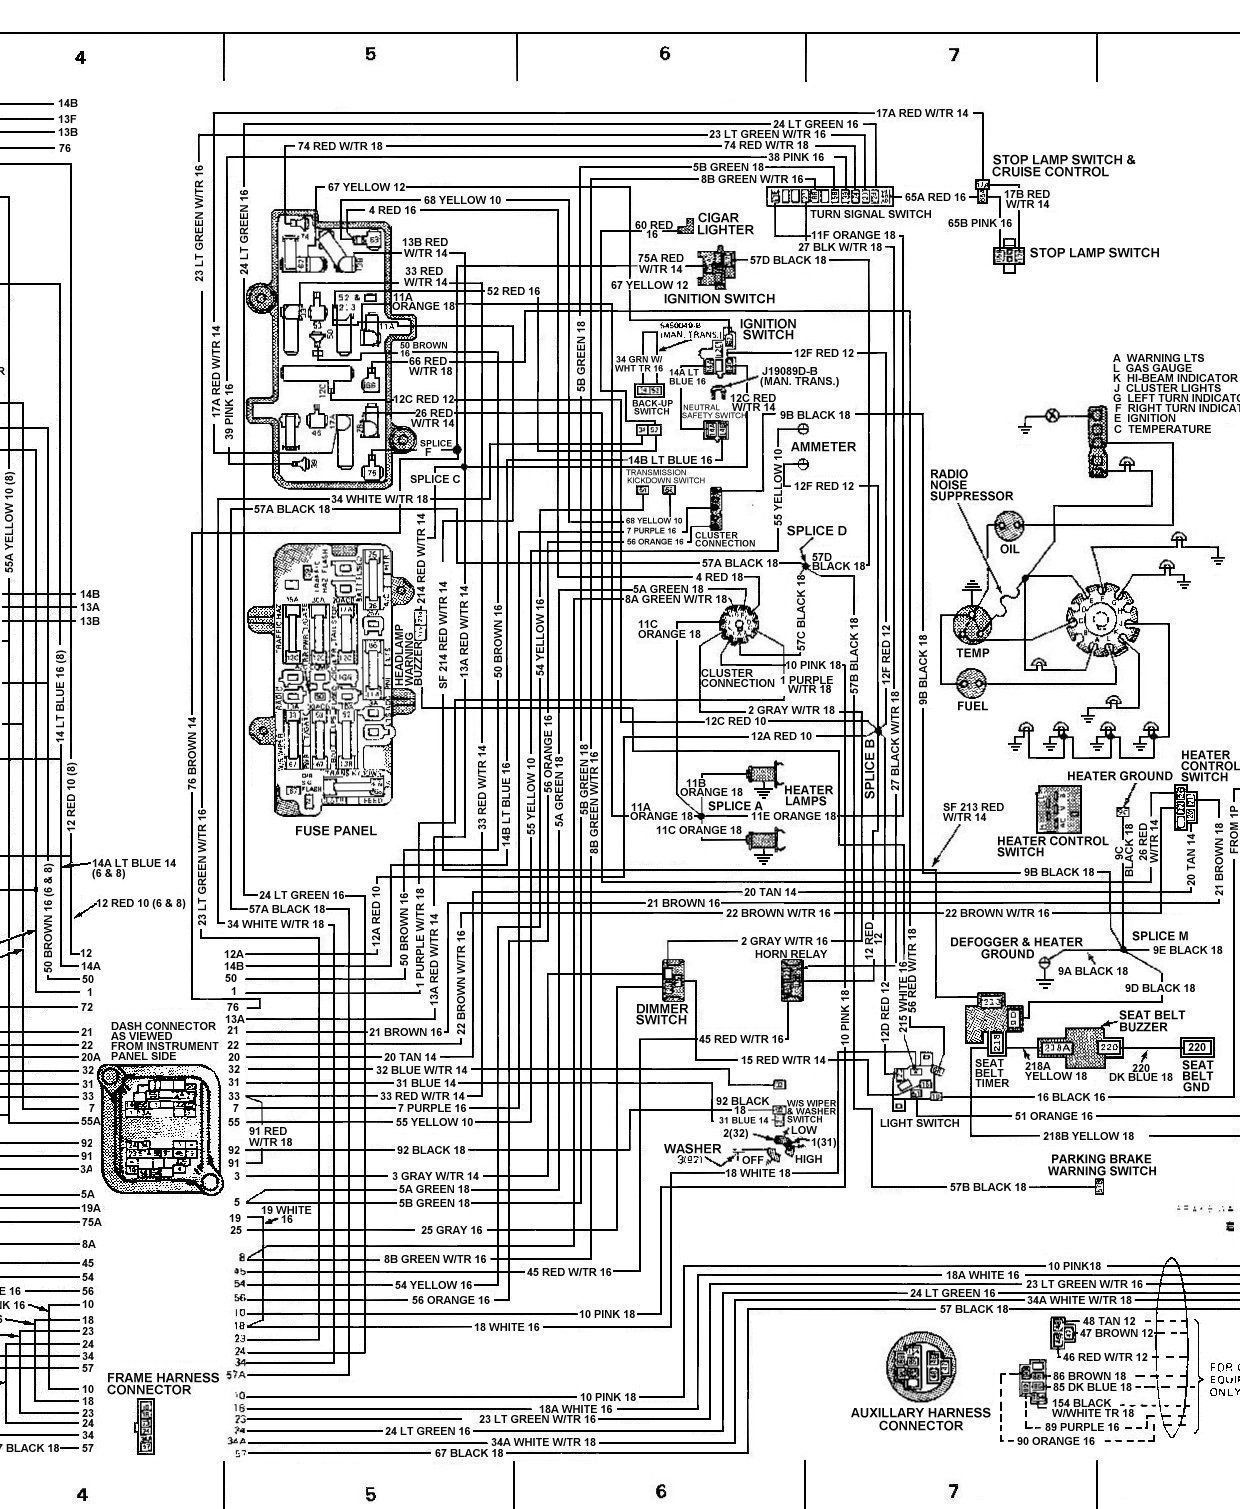 Electrical Wiring Diagram 2003 Vw Jetta Volkswagen on toyota tundra backup camera wiring diagram